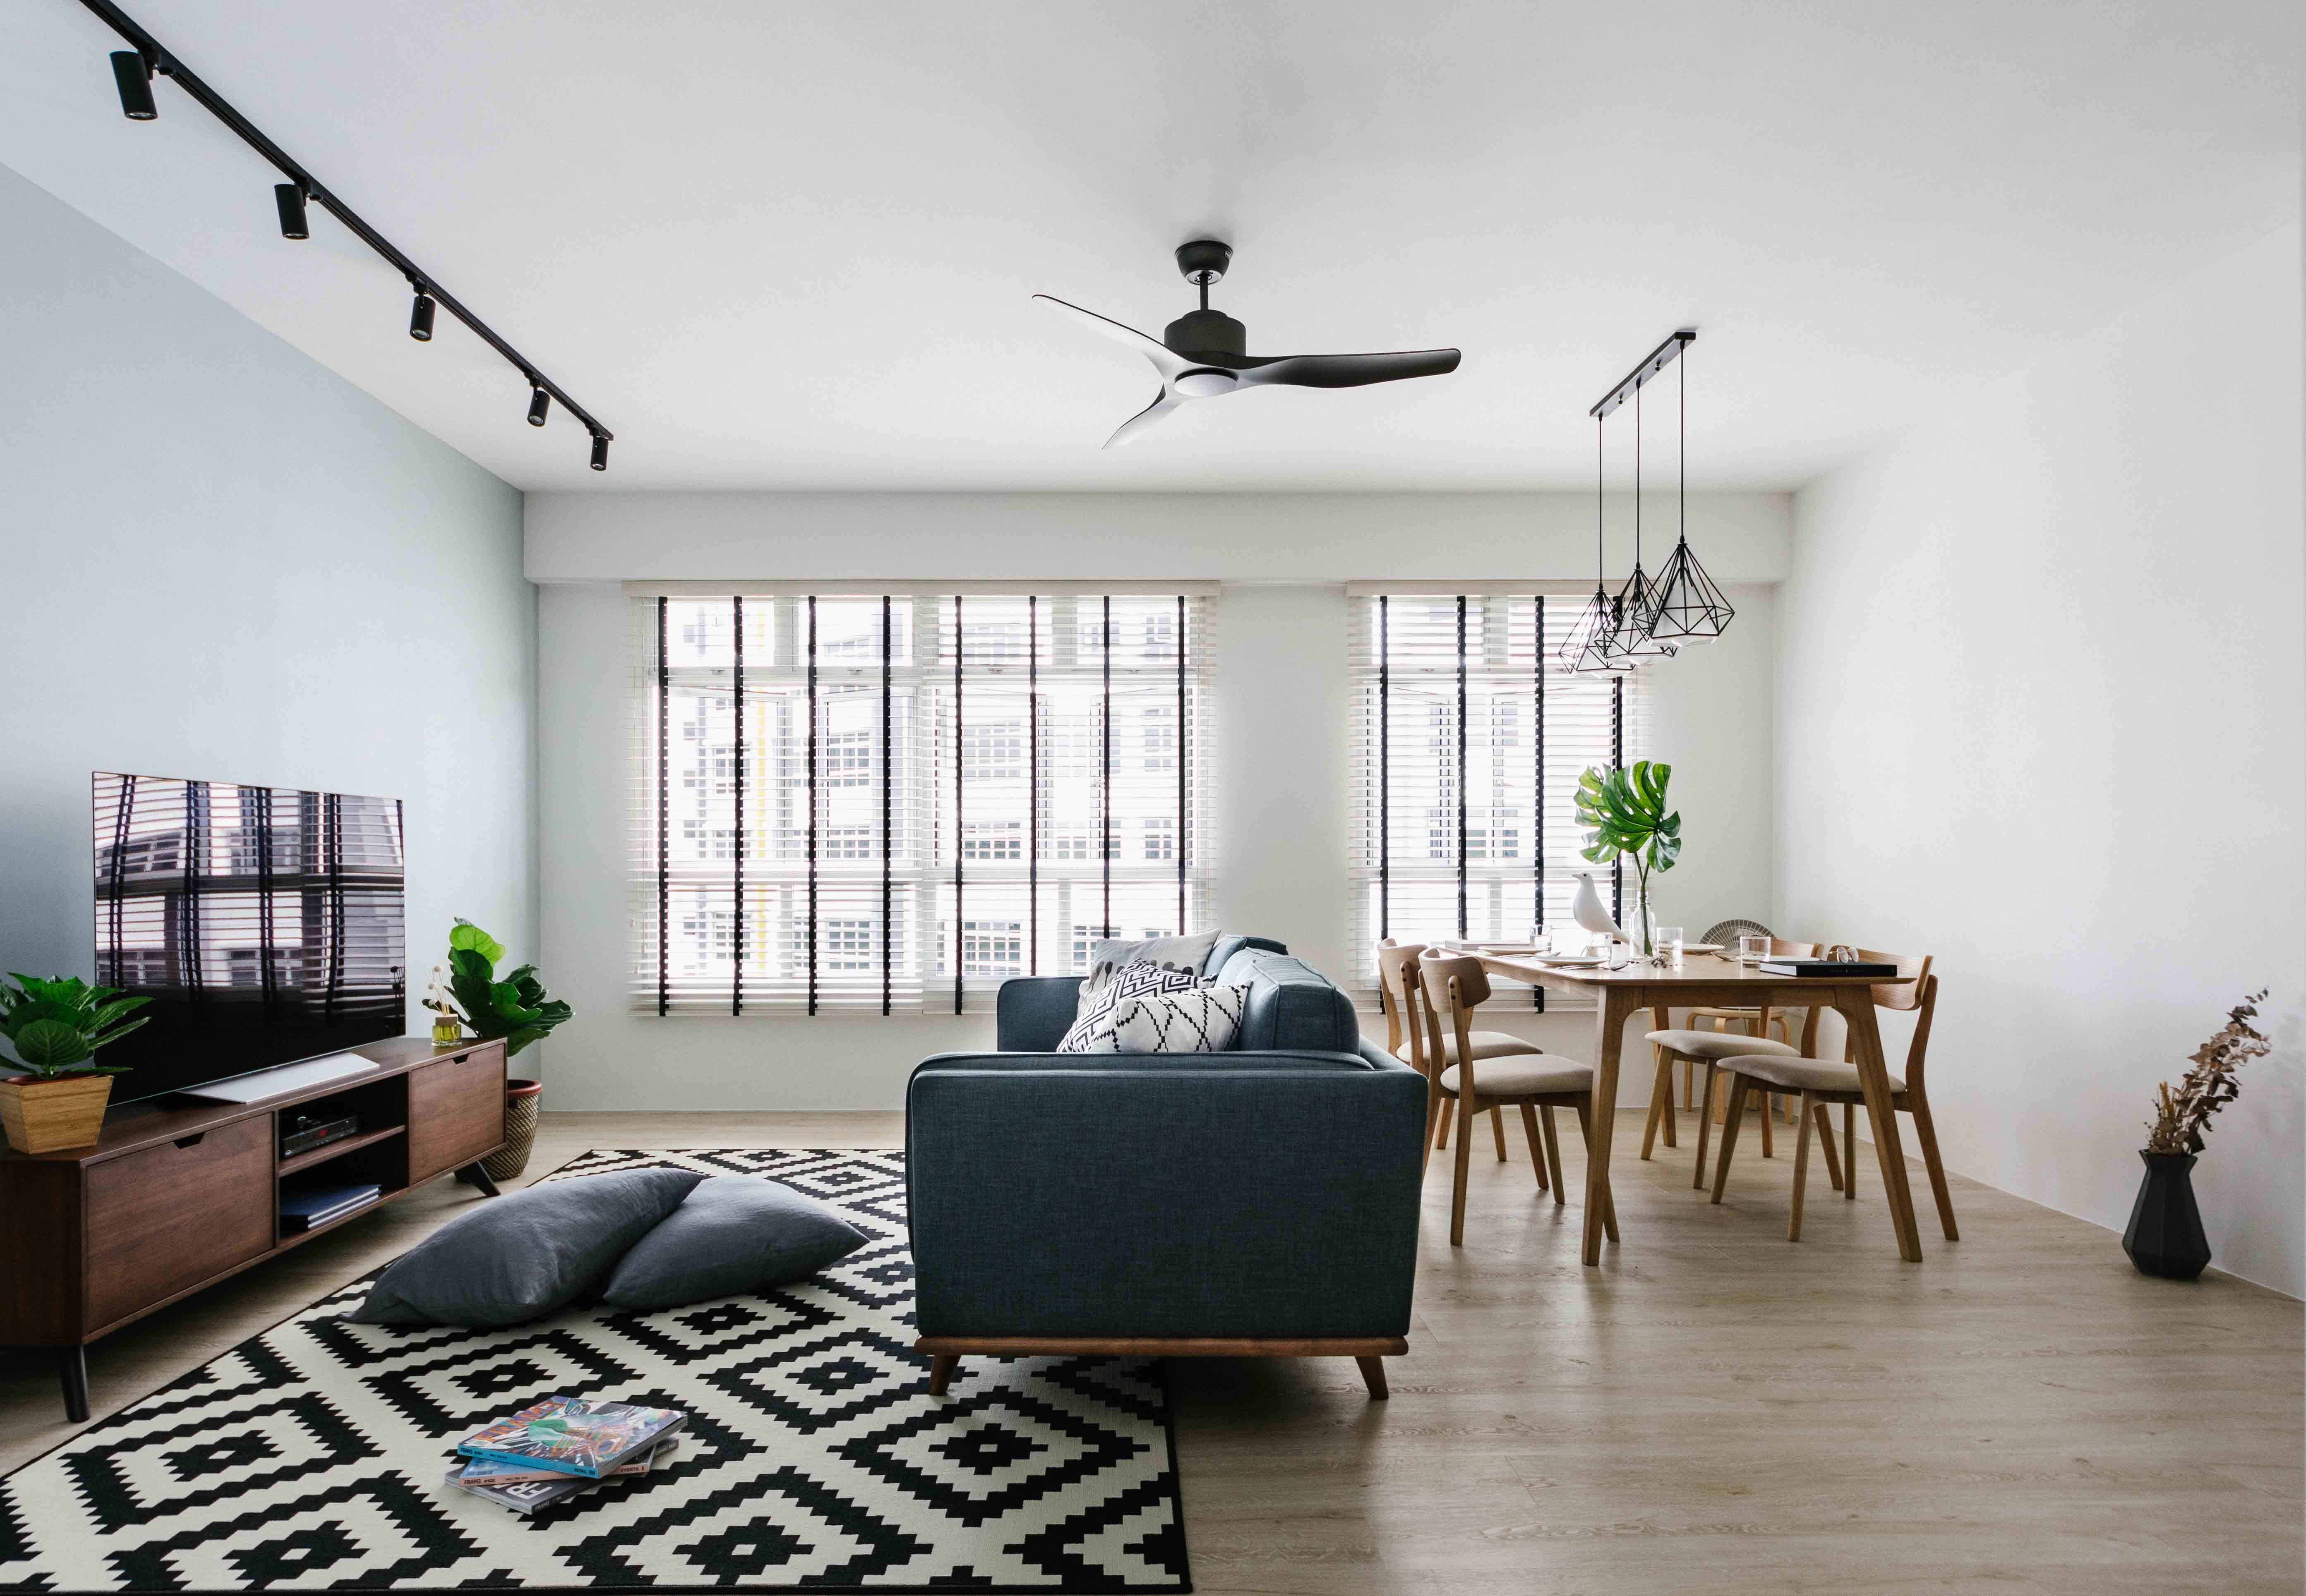 Cool blues and greys bring cosy appeal to this Scandi-style Singaporean home !